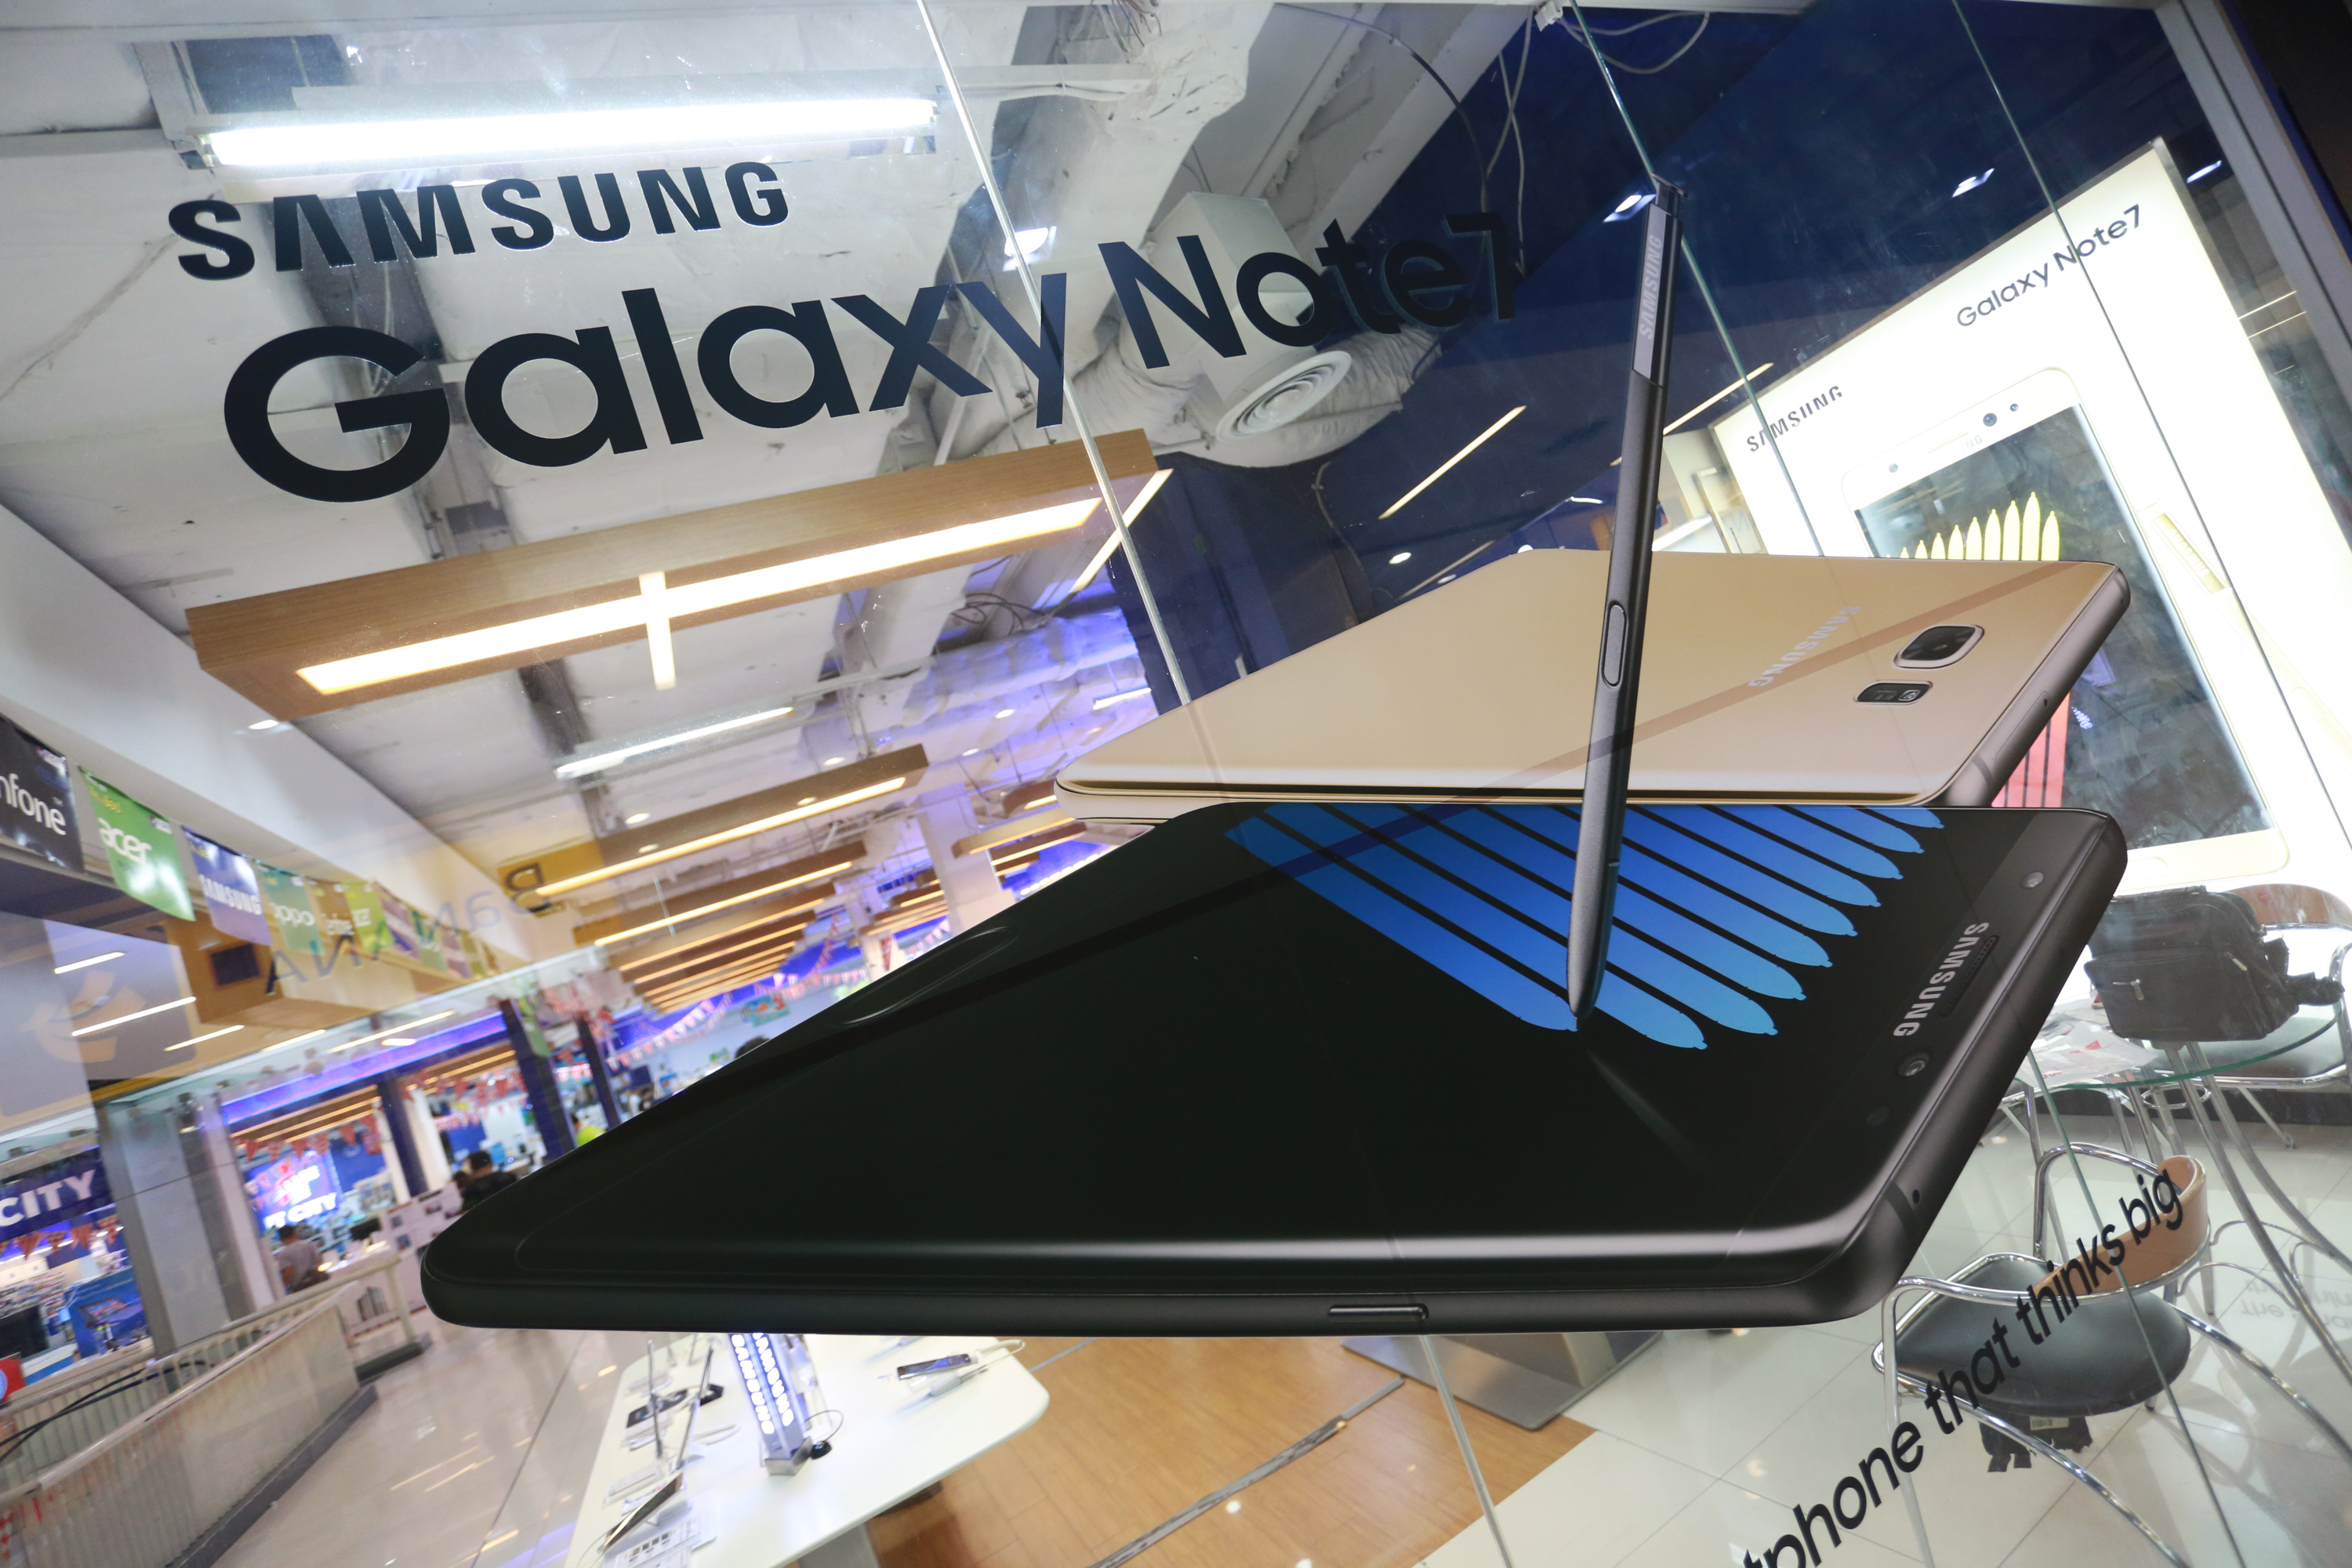 Samsung Electronic Company in Thailand announced a recall of